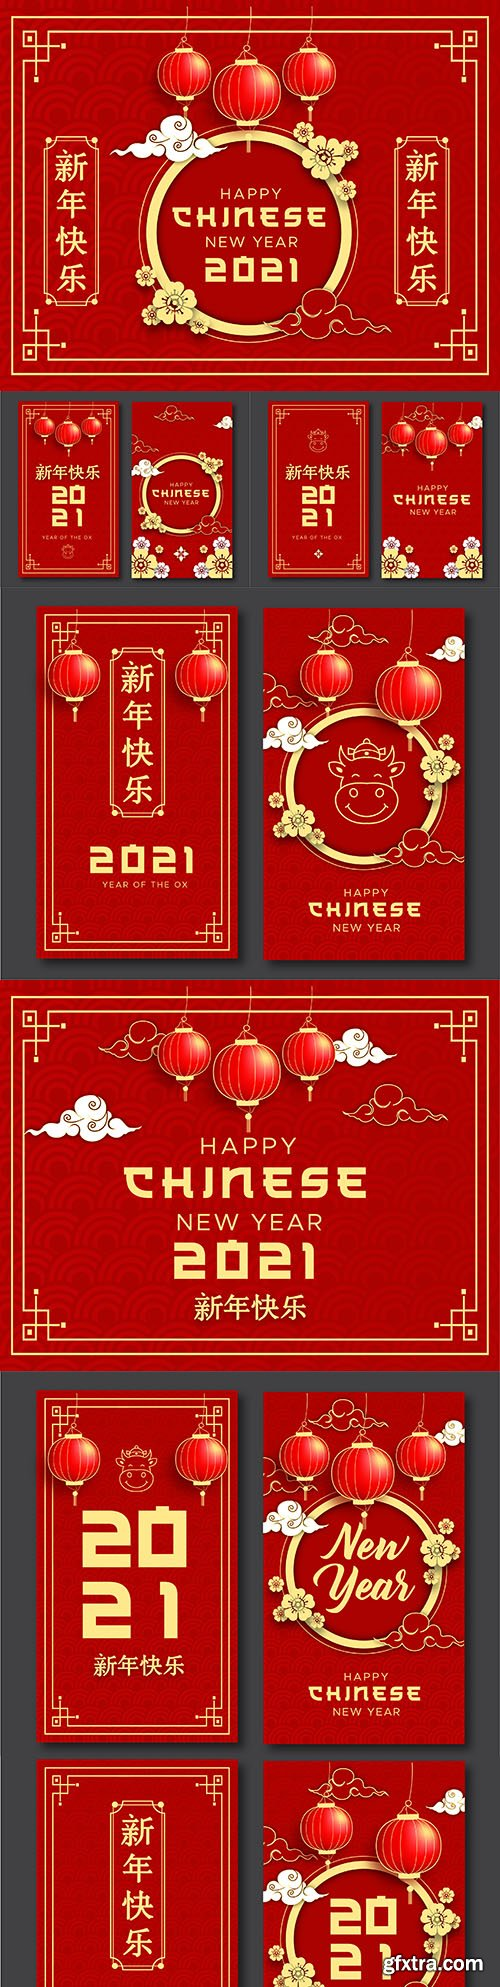 Greeting card for Chinese New Year flowers and flashlights